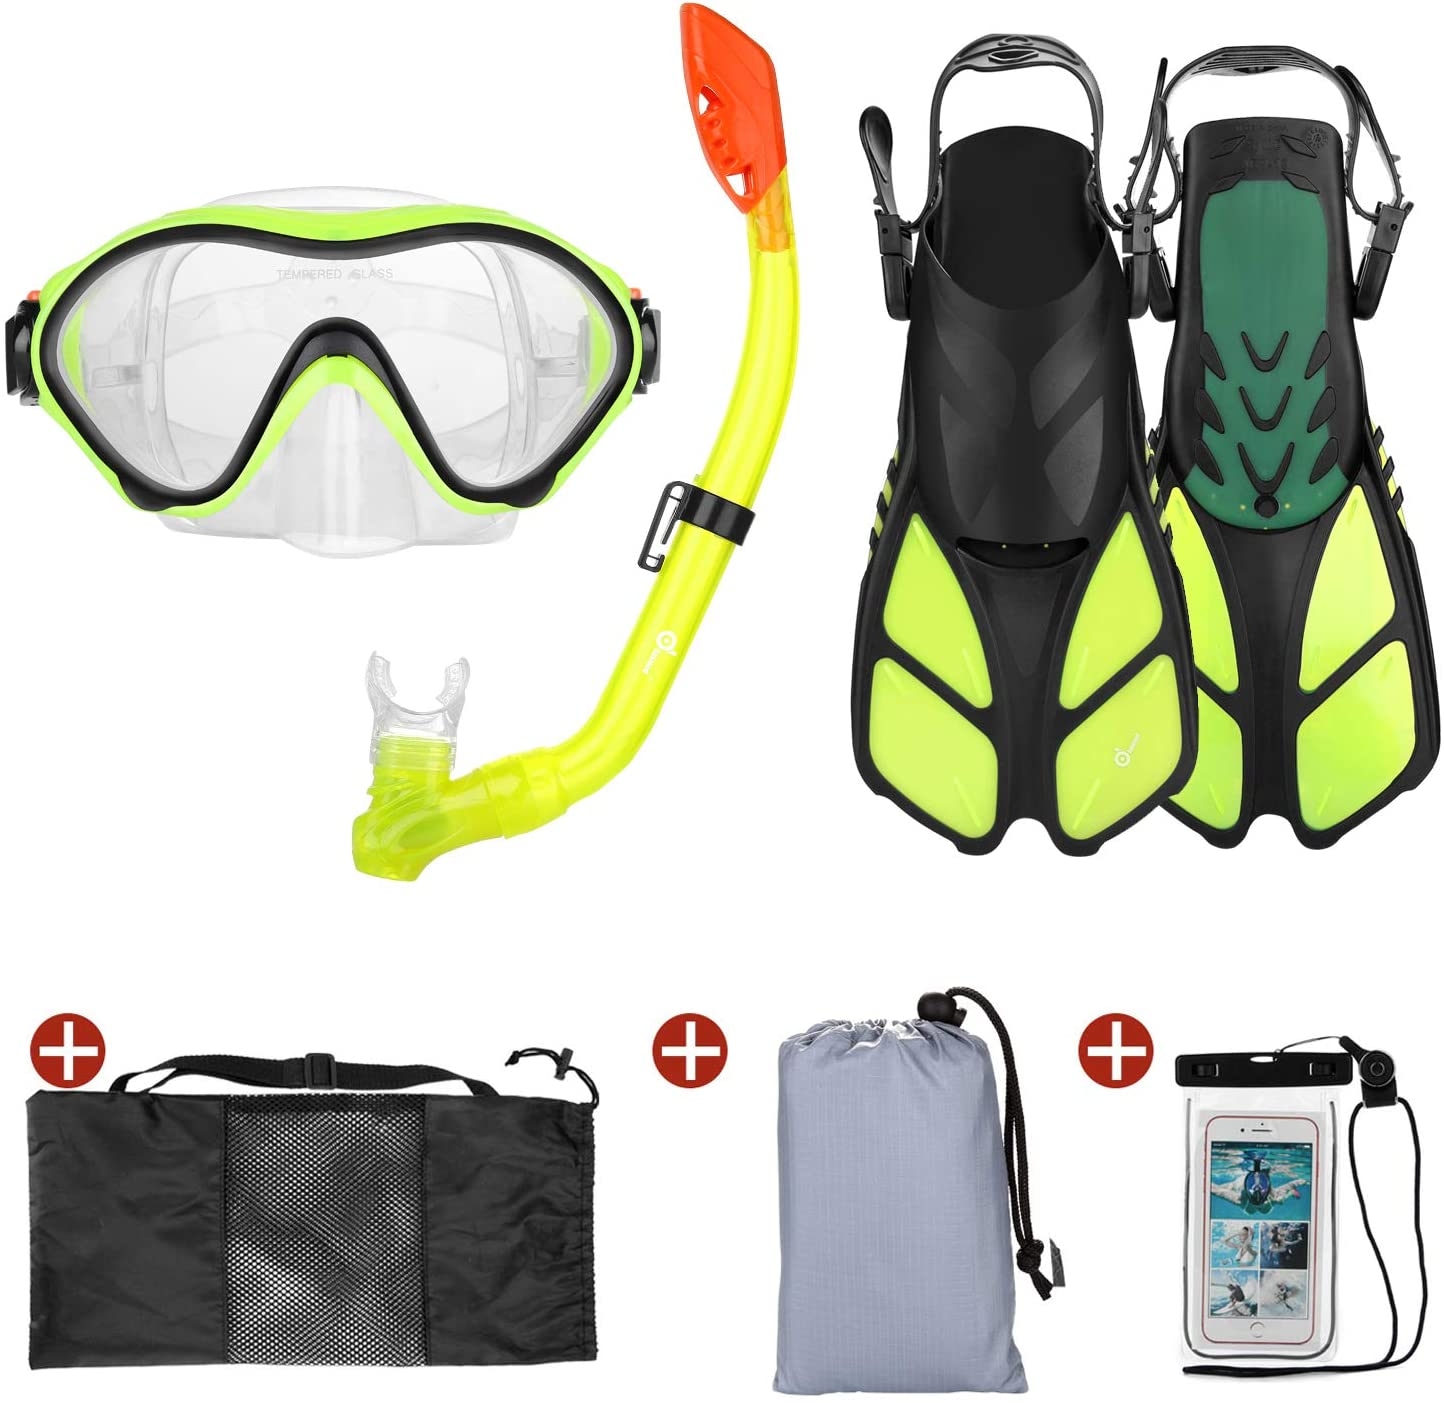 Odoland 6-in-1 Kids Snorkeling Packages Snorkel Set, Anti-Fog and Anti-Leak Full Face Snorkel Mask with Adjustable Swim Fins, Beach Blanket and Waterproof Case for Boys and Girls Age 9-15 Yellow : Sports & Outdoors